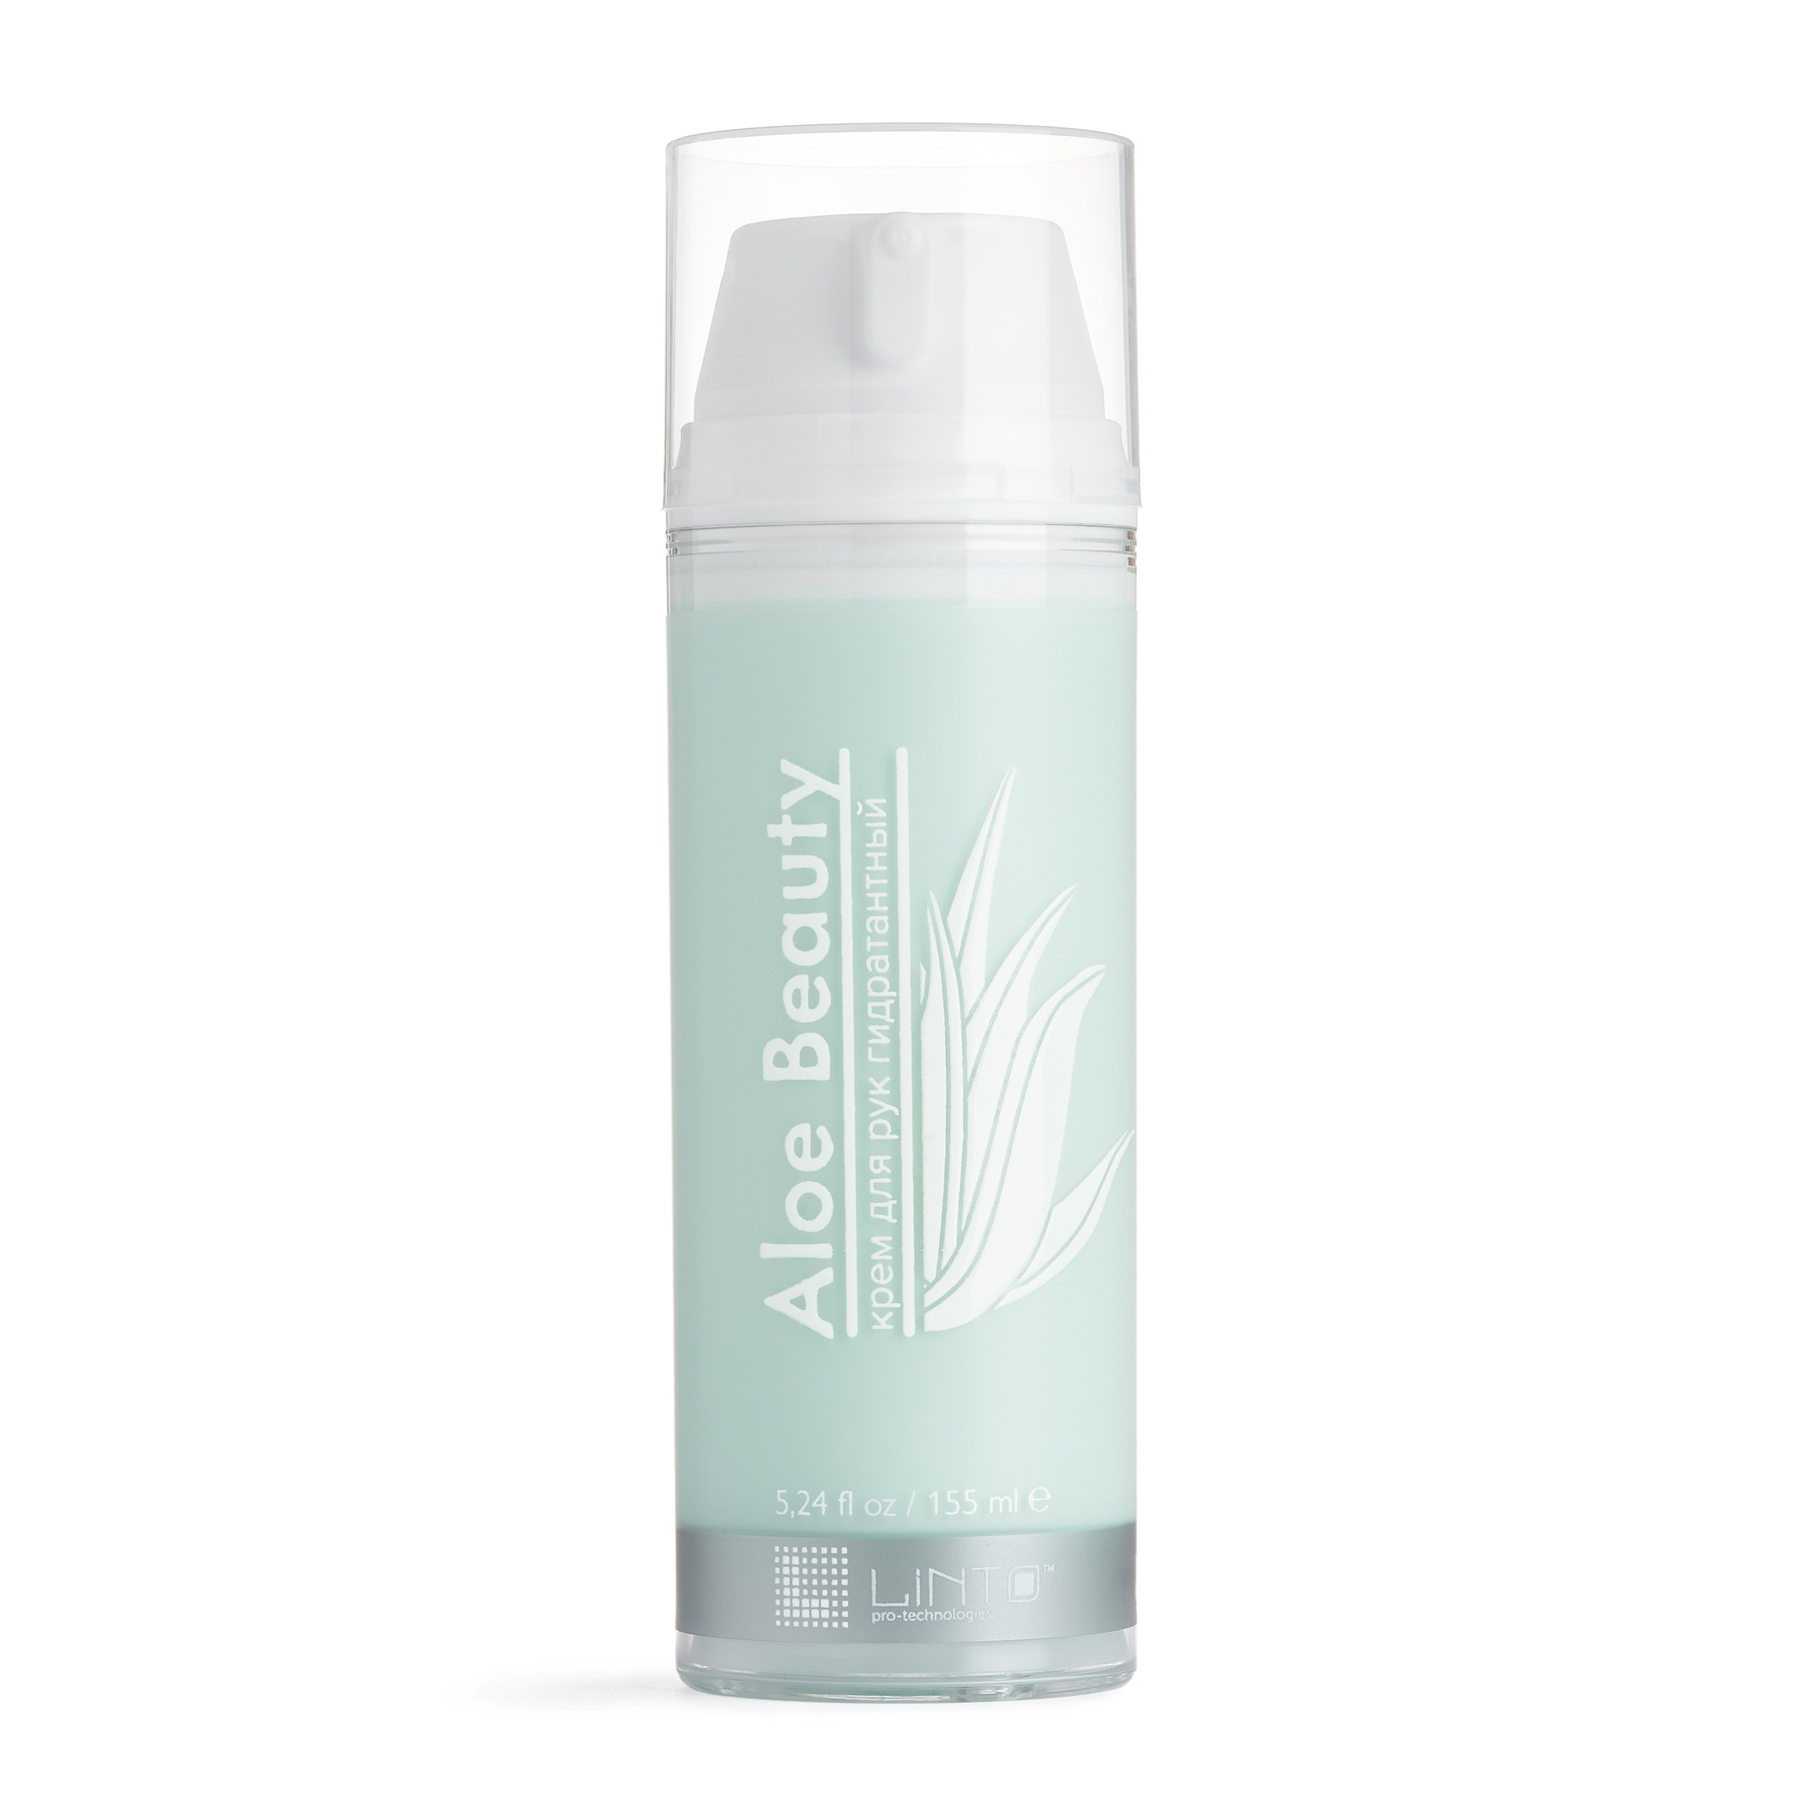 ALOE BEAUTY 155 ml